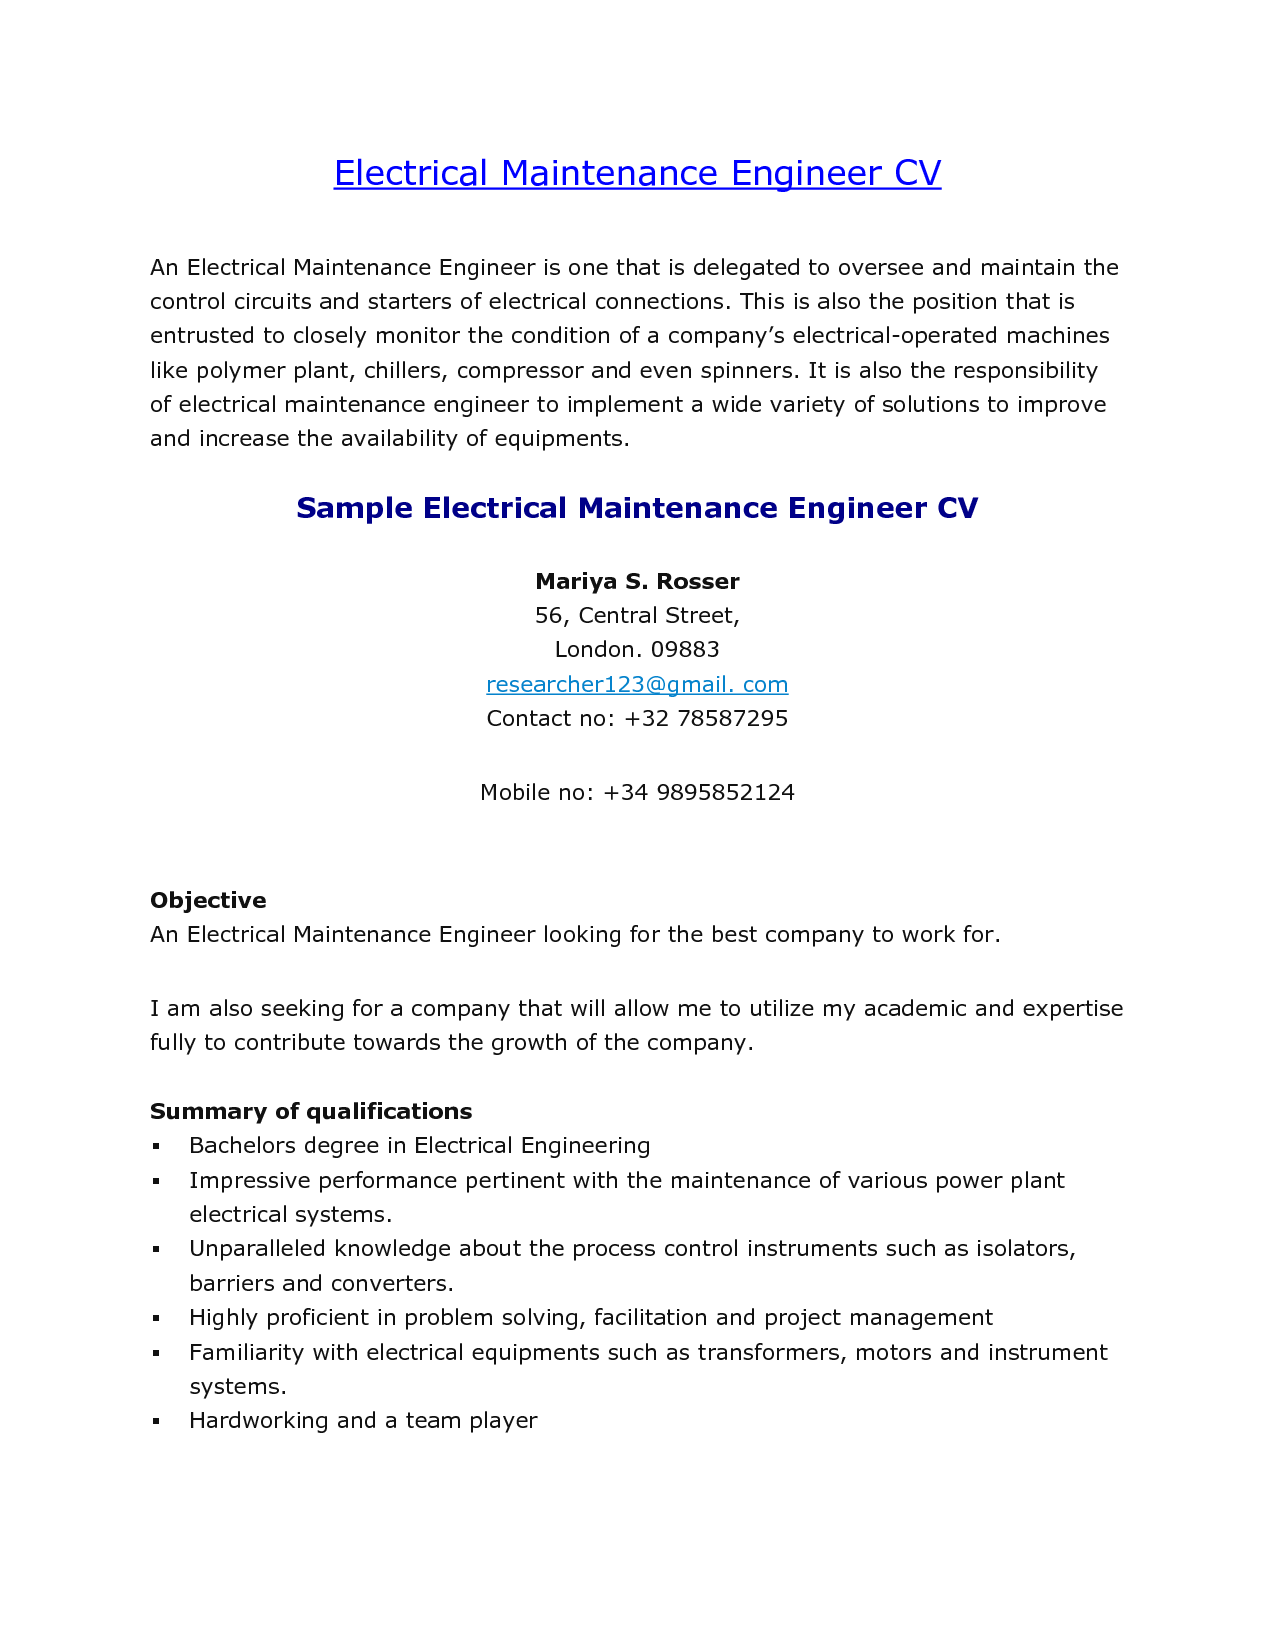 Aircraft Mechanic Resume  aviation line service technician resume     Clasifiedad  Com aircraft maintenance engineer exemple de cv work experience aircraft